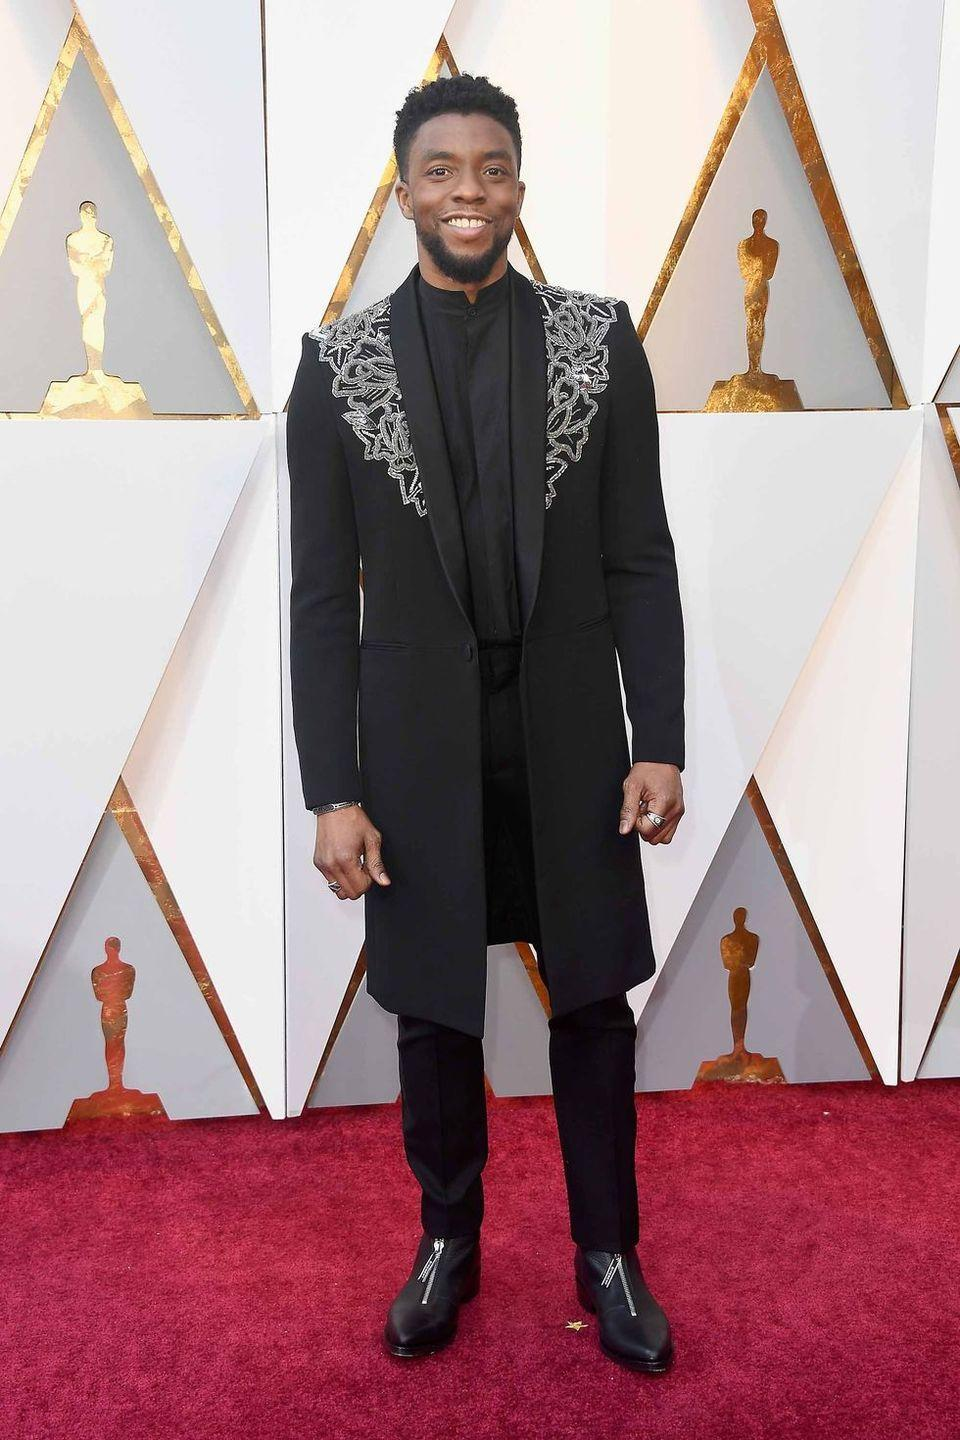 <p>A relative newcomer, Boseman knows exactly how to make the red carpet feel exciting without losing sight of just plain looking great.</p>